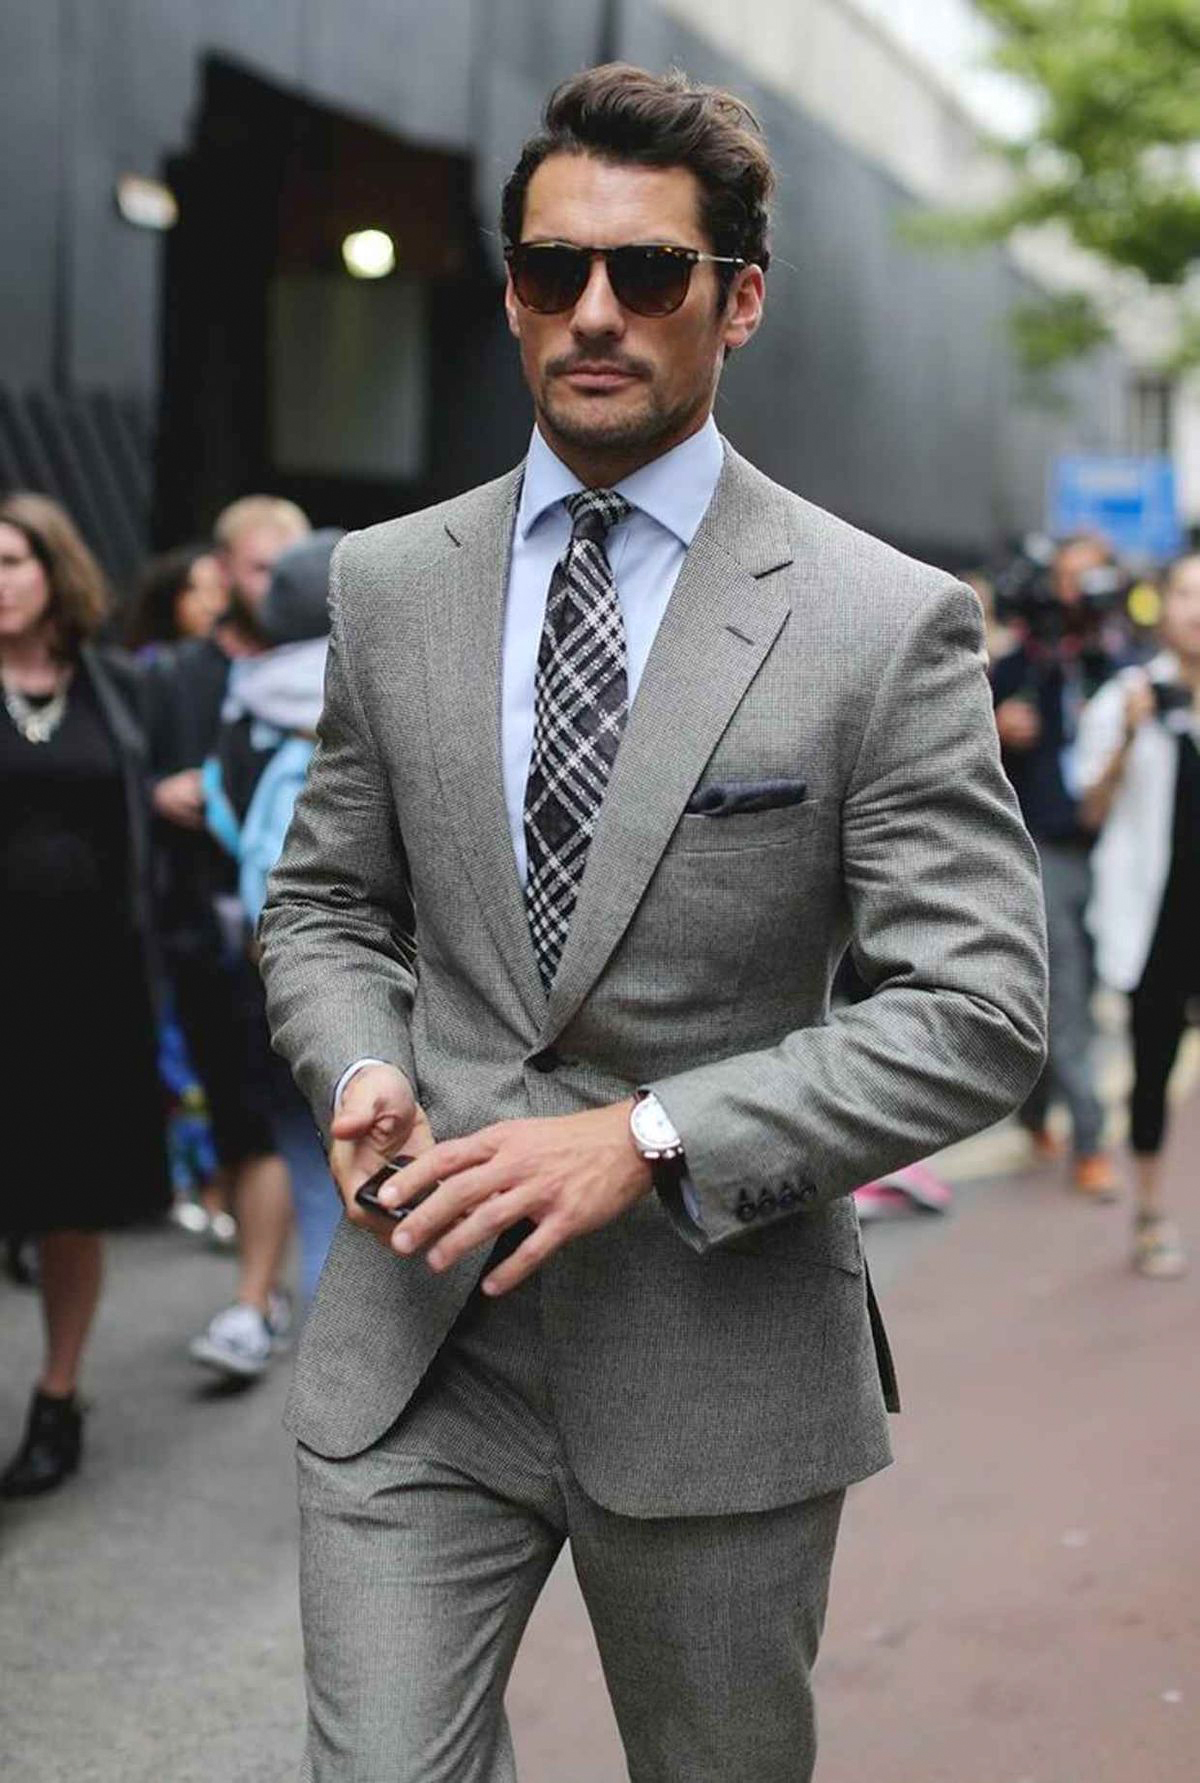 Light grey suit and blue shirt color combination